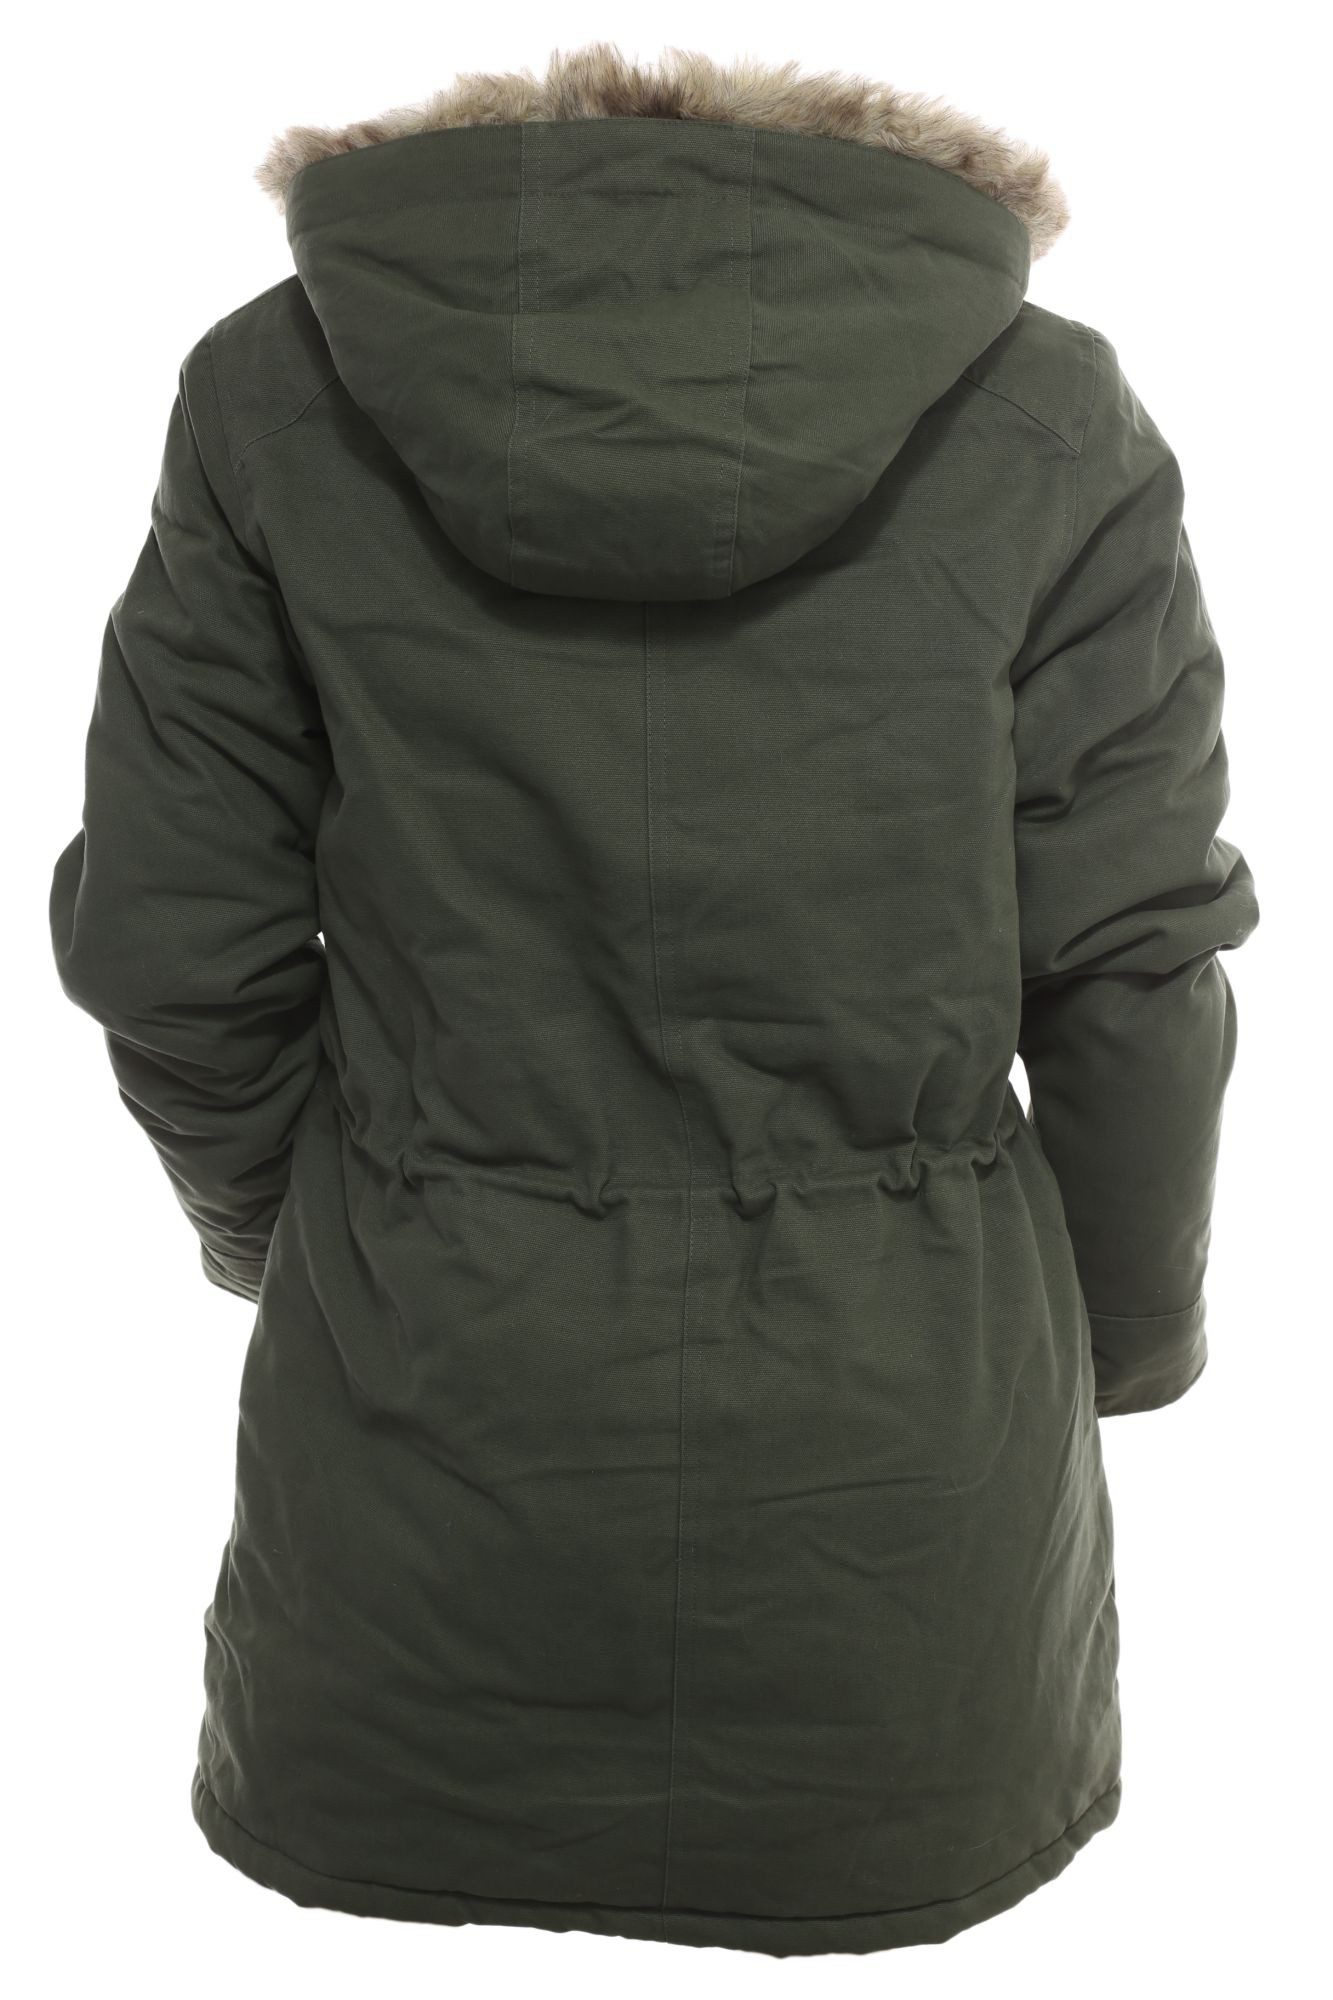 Billabong Jacke Parka Mantel Outdoorjacke Winterjacke Damen